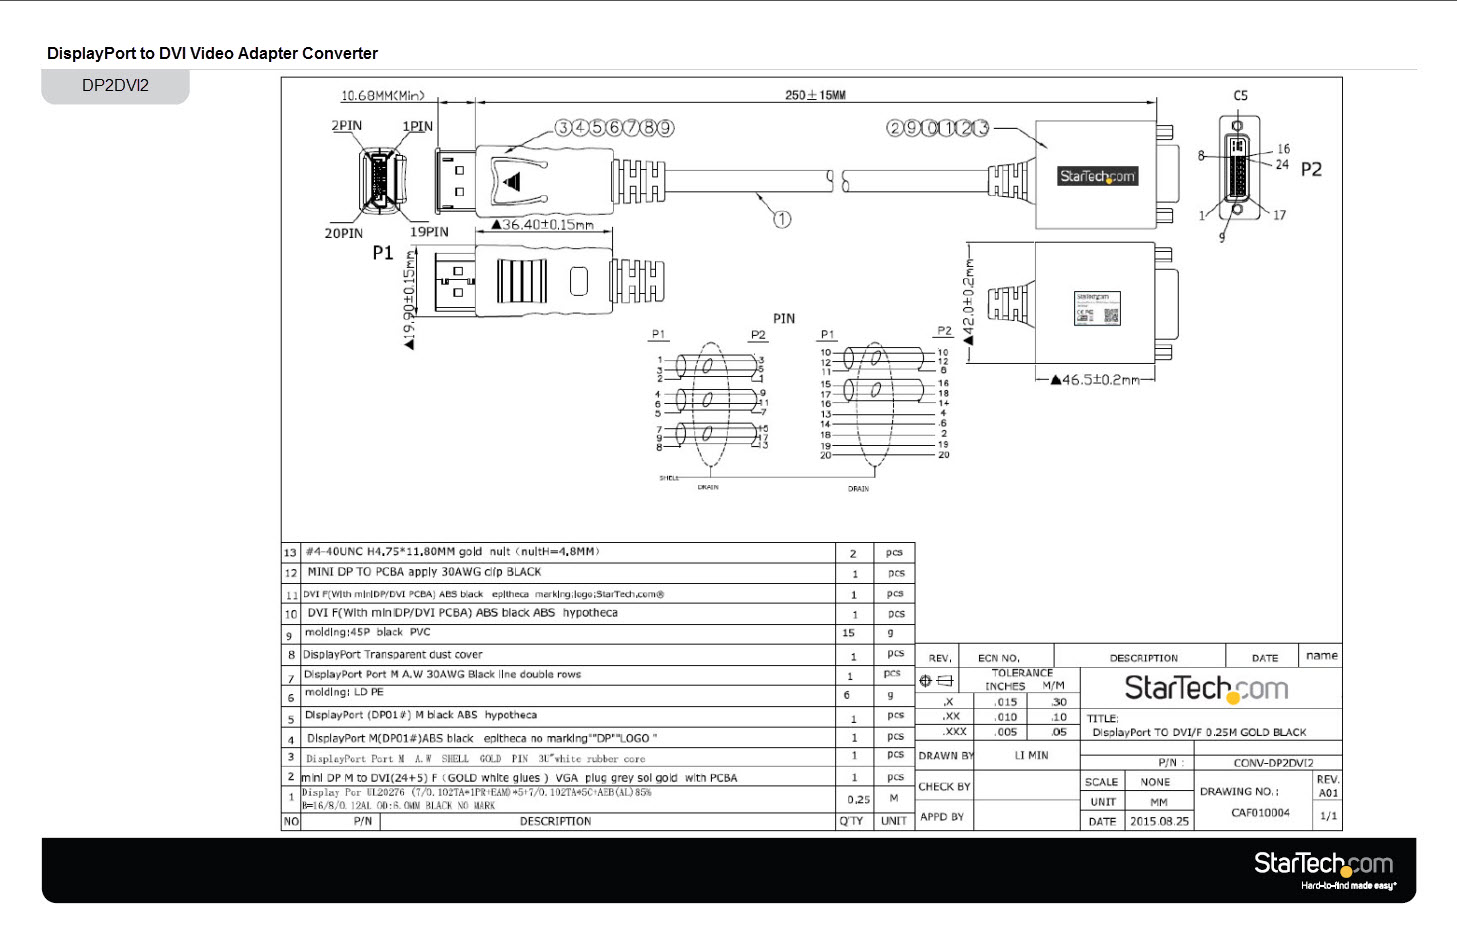 wiring diagram dvi to vga adapter hdmi cable schematic displayport to dvi-d wiring diagram DVI Wires Colors